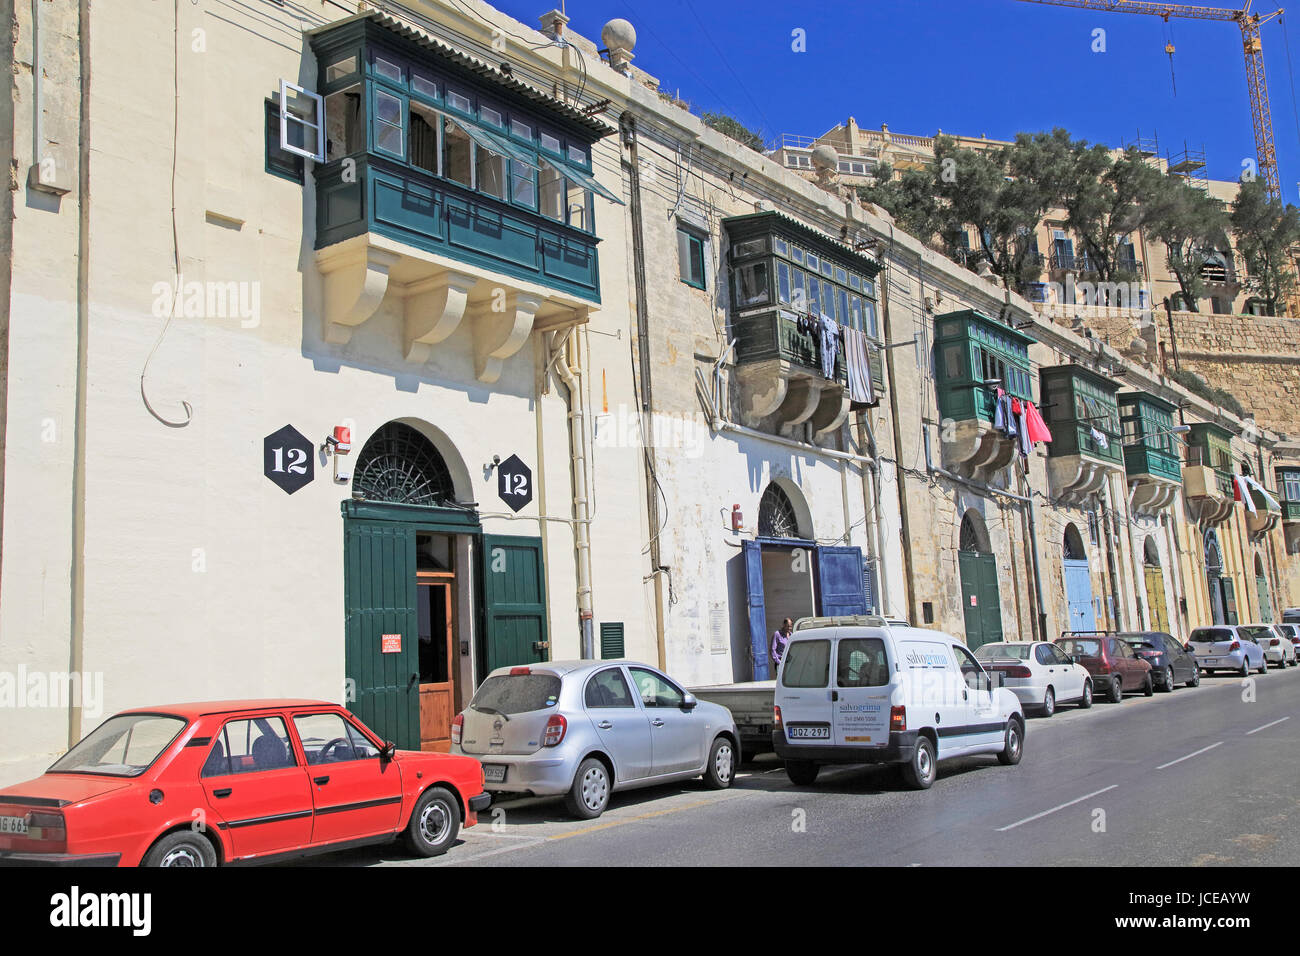 Old merchant house with balcony above warehouse area, Valletta, Malta Stock Photo